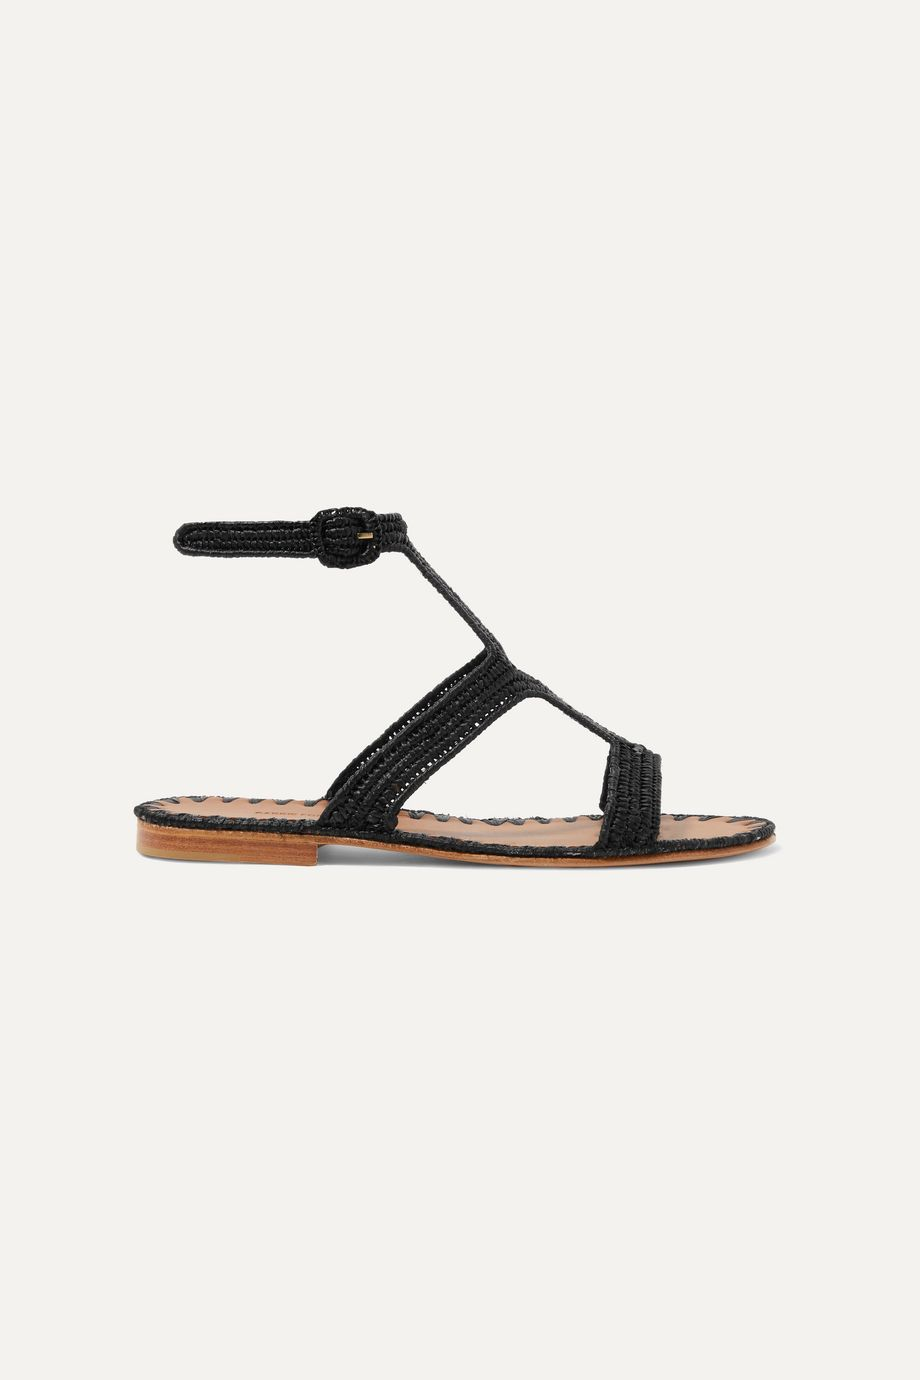 Carrie Forbes Hind woven raffia sandals